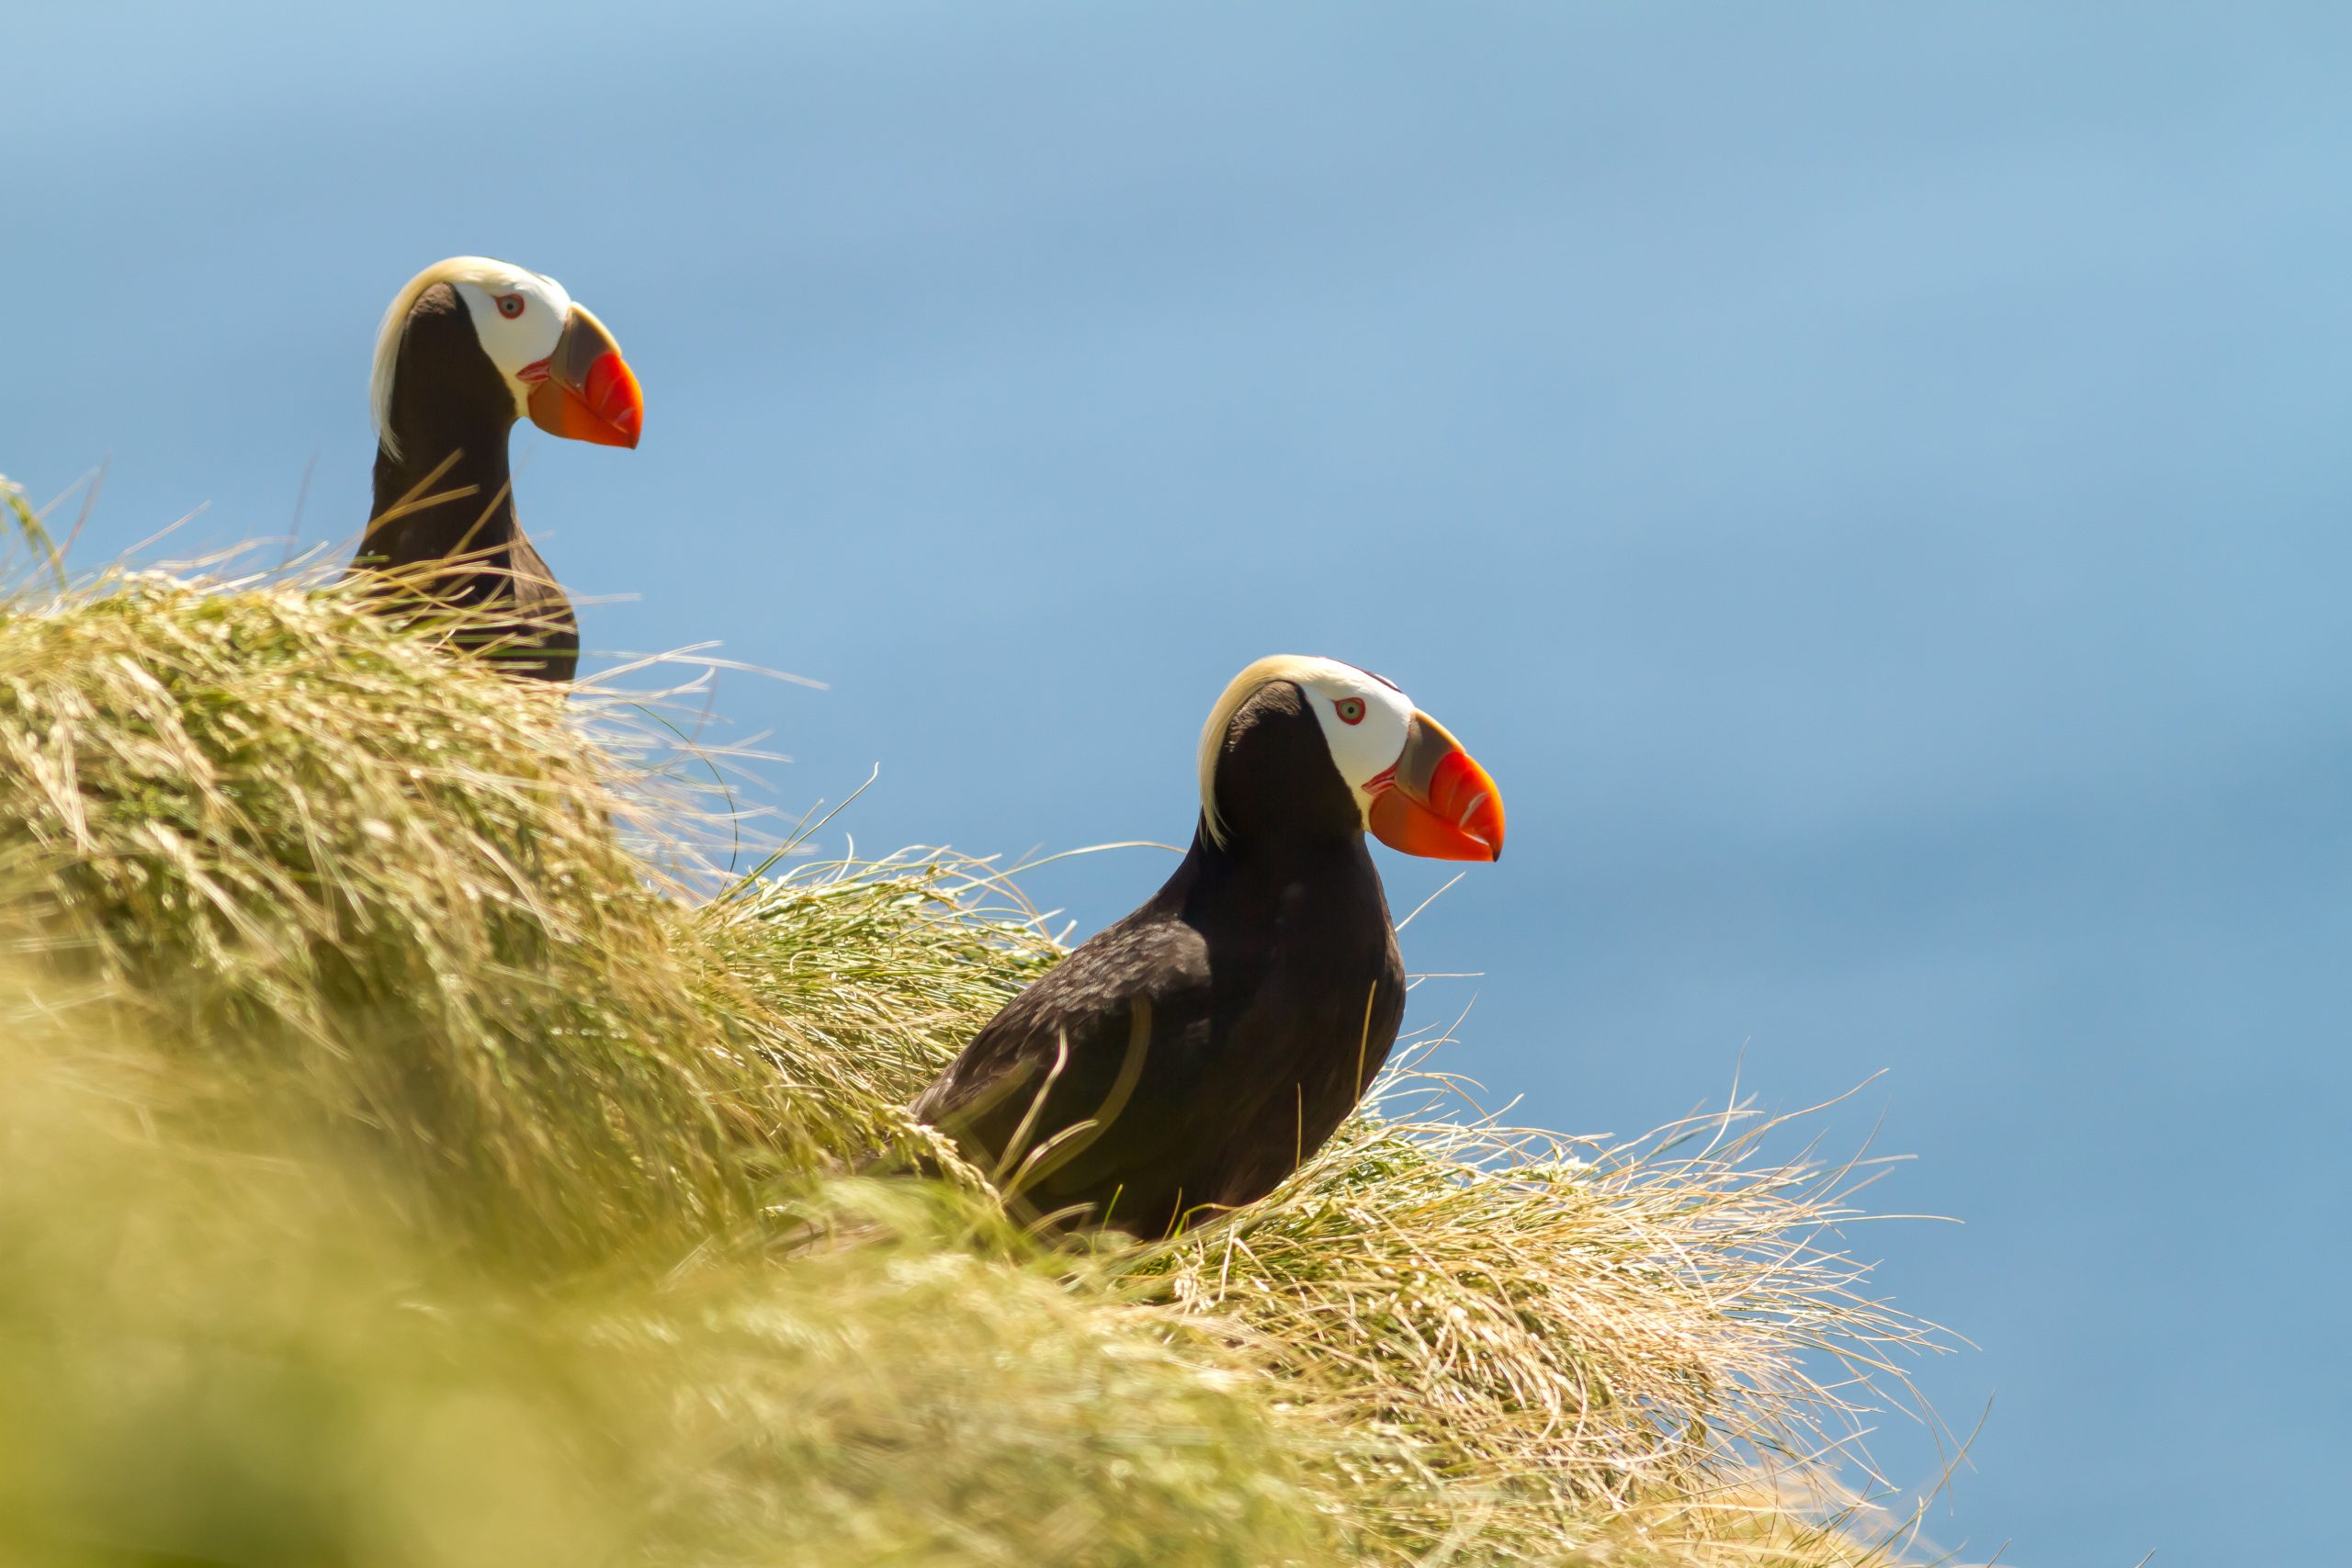 Two Tufted Puffins on a grassy island